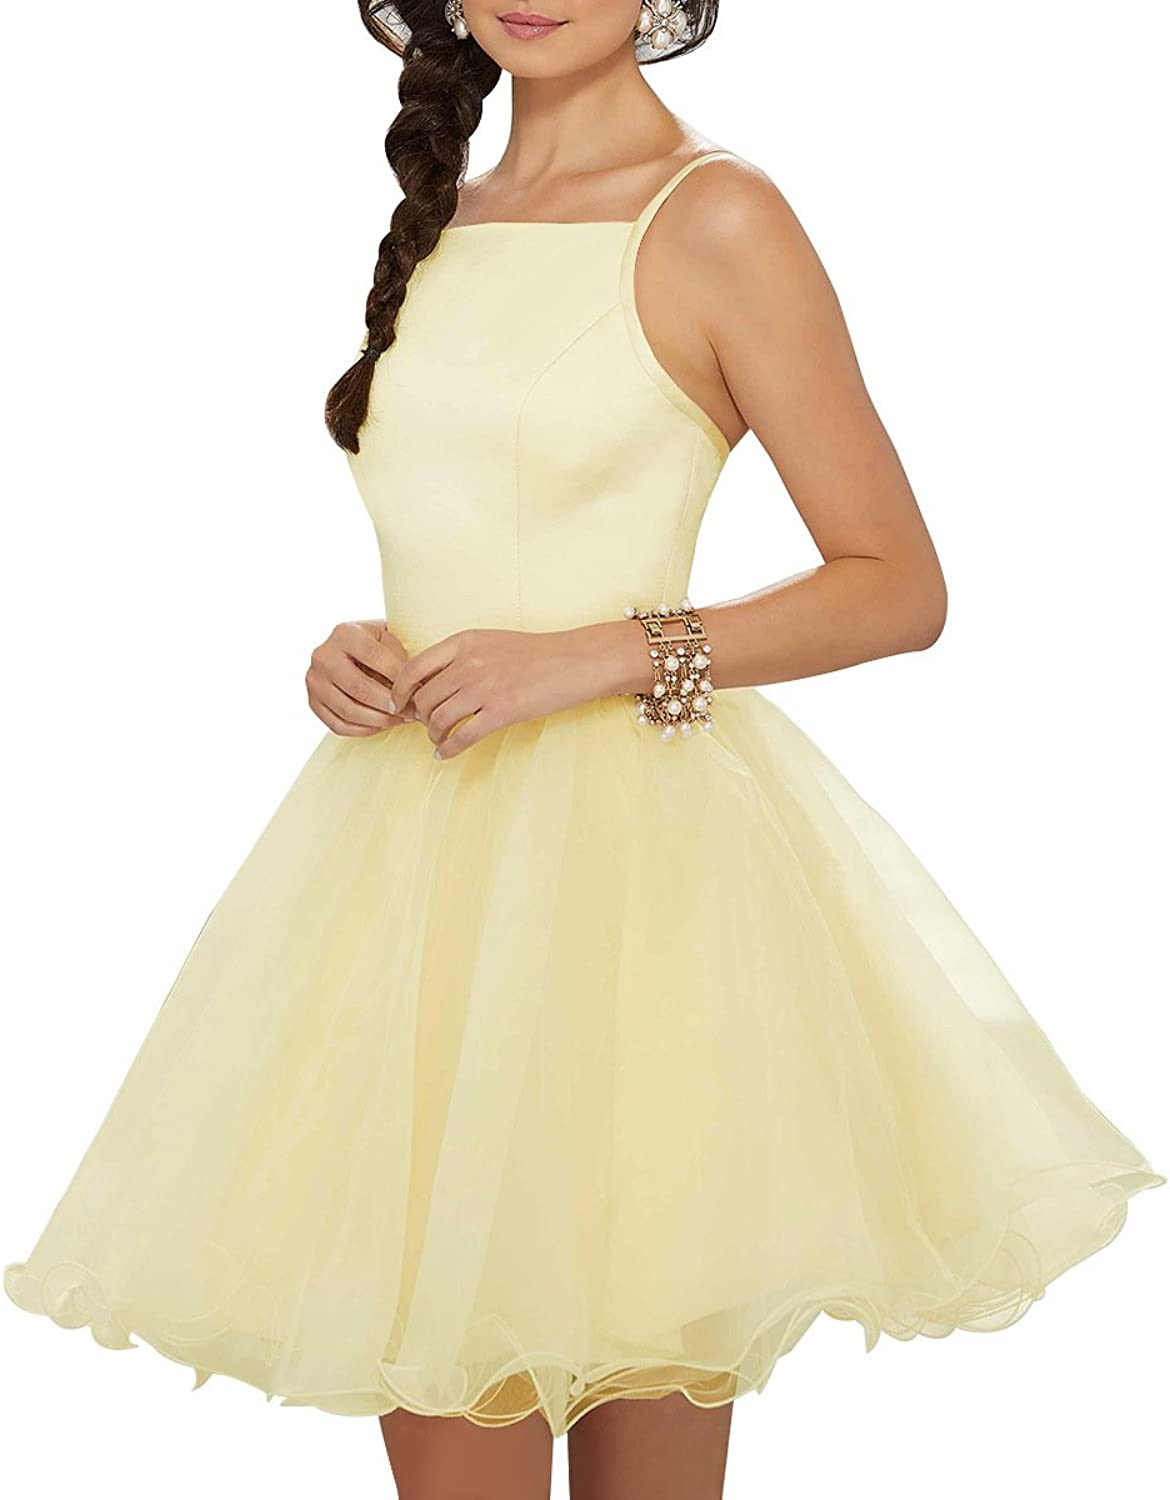 Staypretty Homecoming Dresses Satin Lace Halter Aline Formal Women Short Prom Gown with Pockets